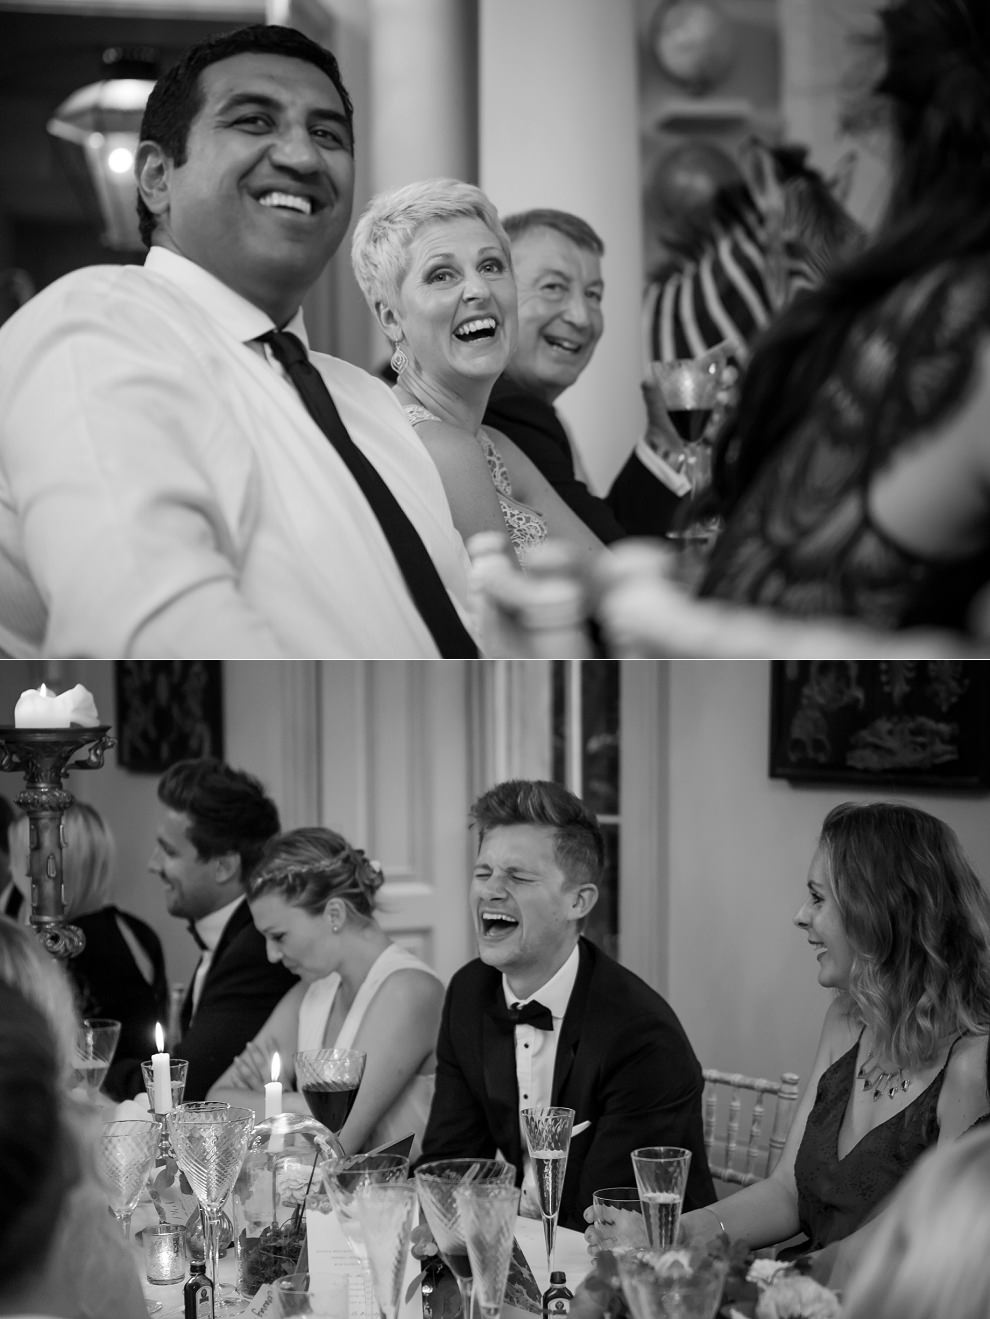 Candid guests laughing at wedding